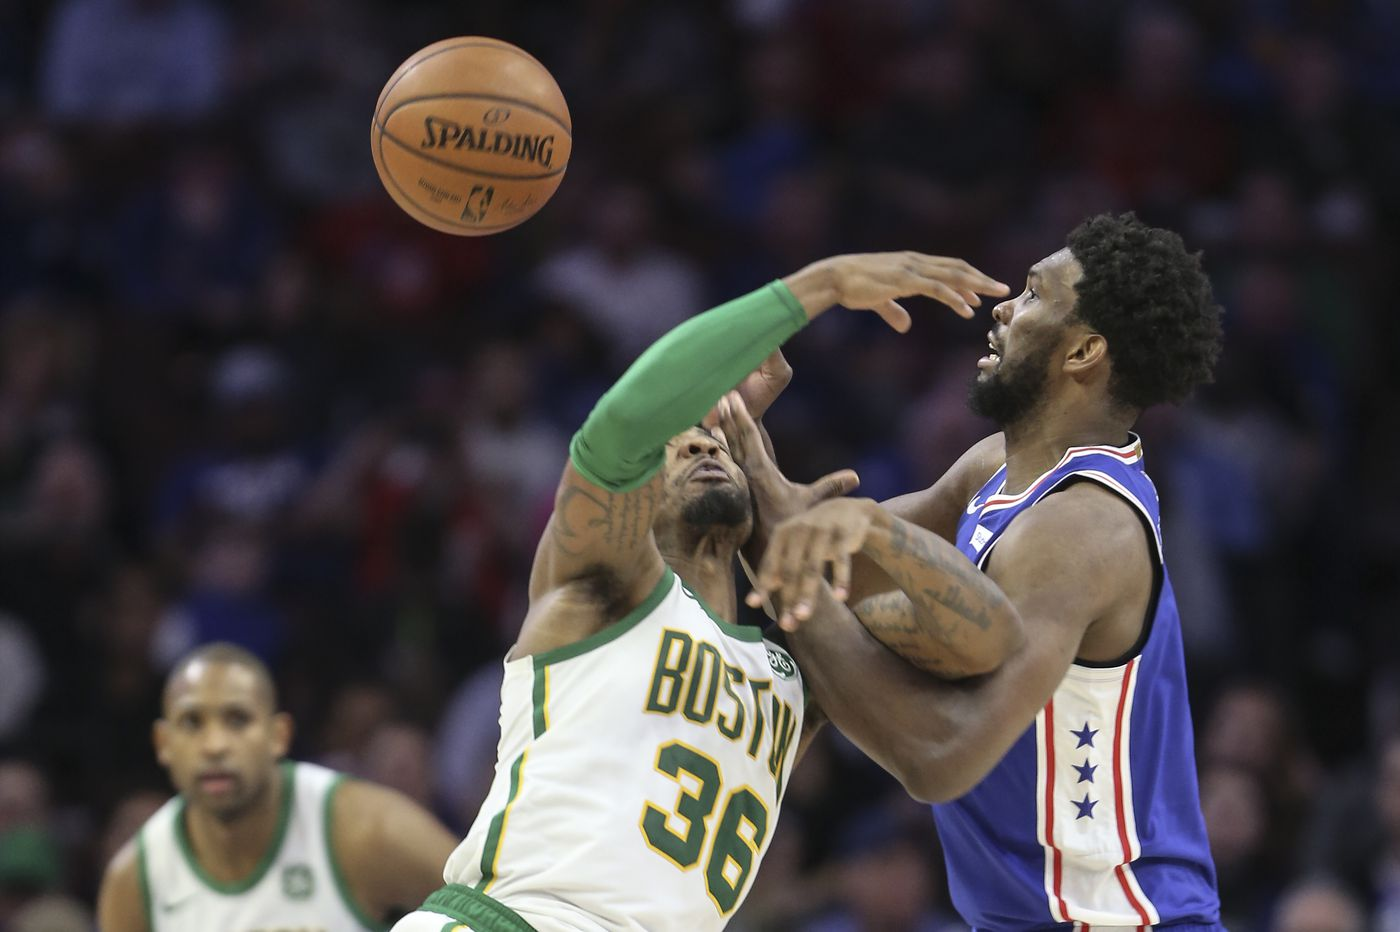 Sixers-Celtics observations: Philly is the NBA's hottest team; no love lost for opposing squads